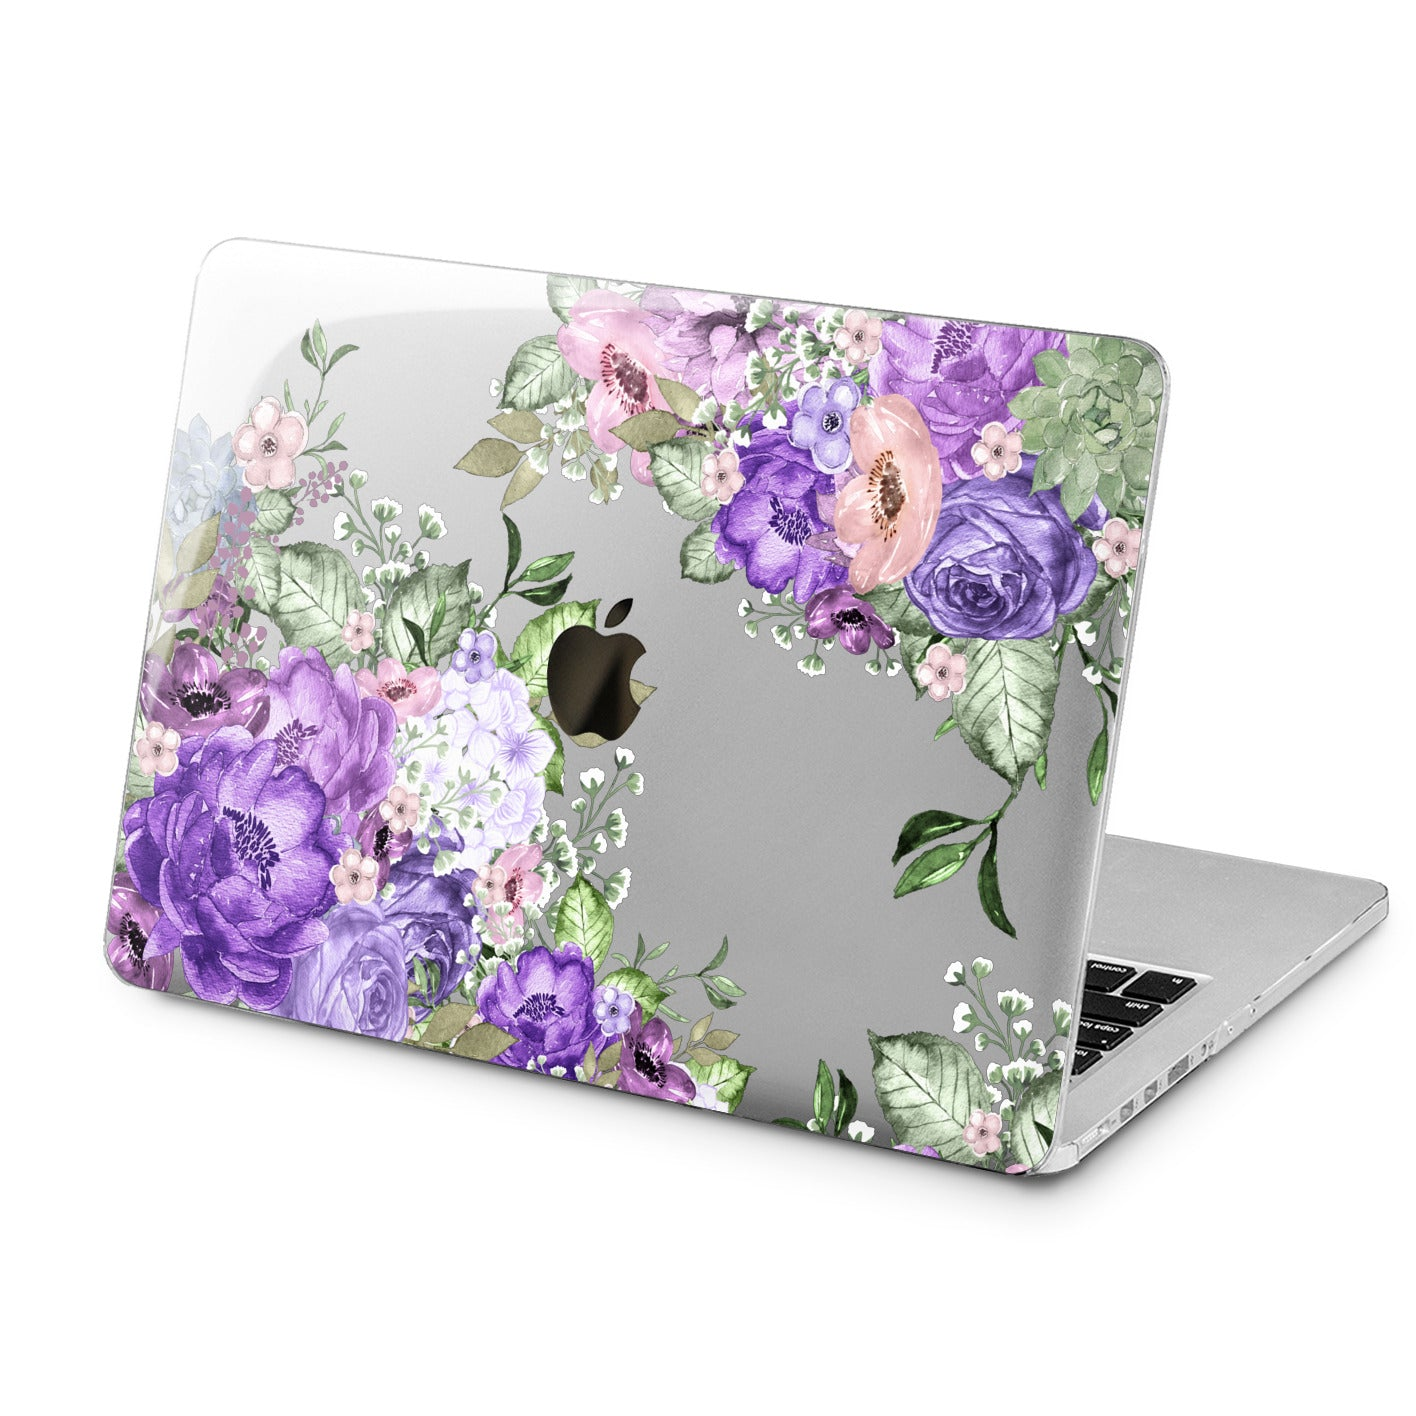 Lex Altern Lex Altern Purple Floral Pattern Case for your Laptop Apple Macbook.